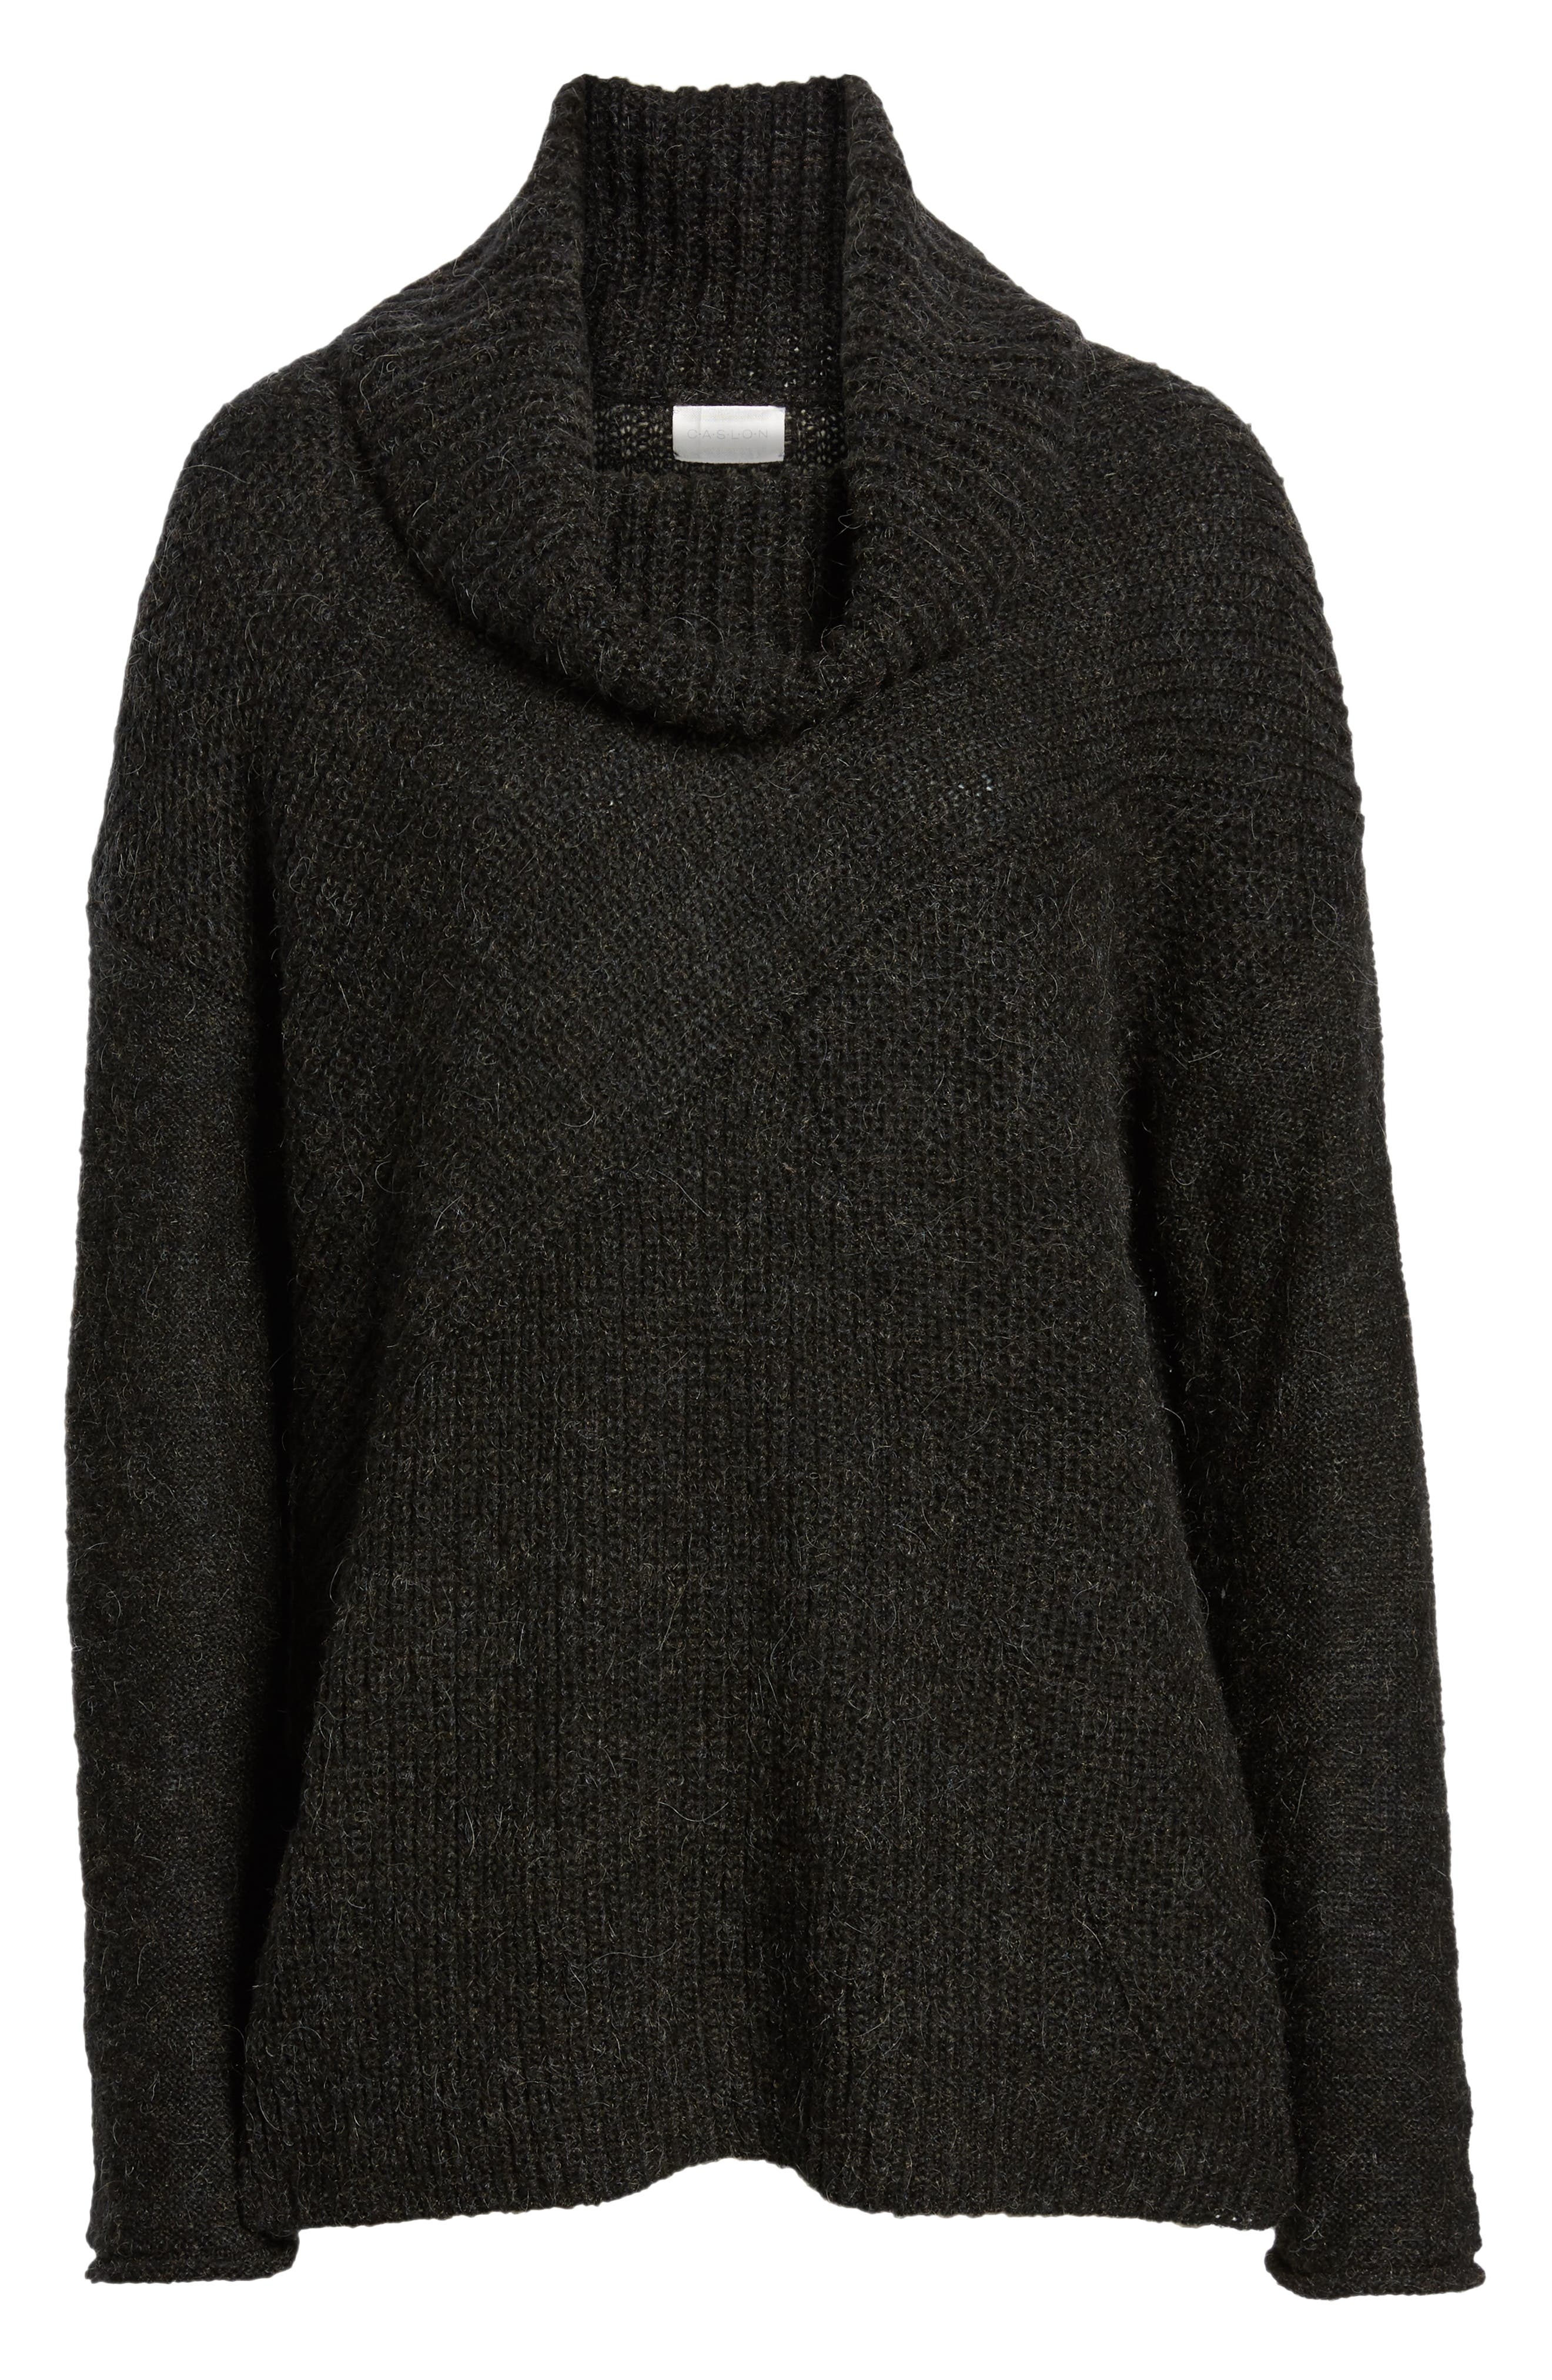 Mix Stitch Funnel Neck Wool Blend Sweater,                             Alternate thumbnail 6, color,                             001